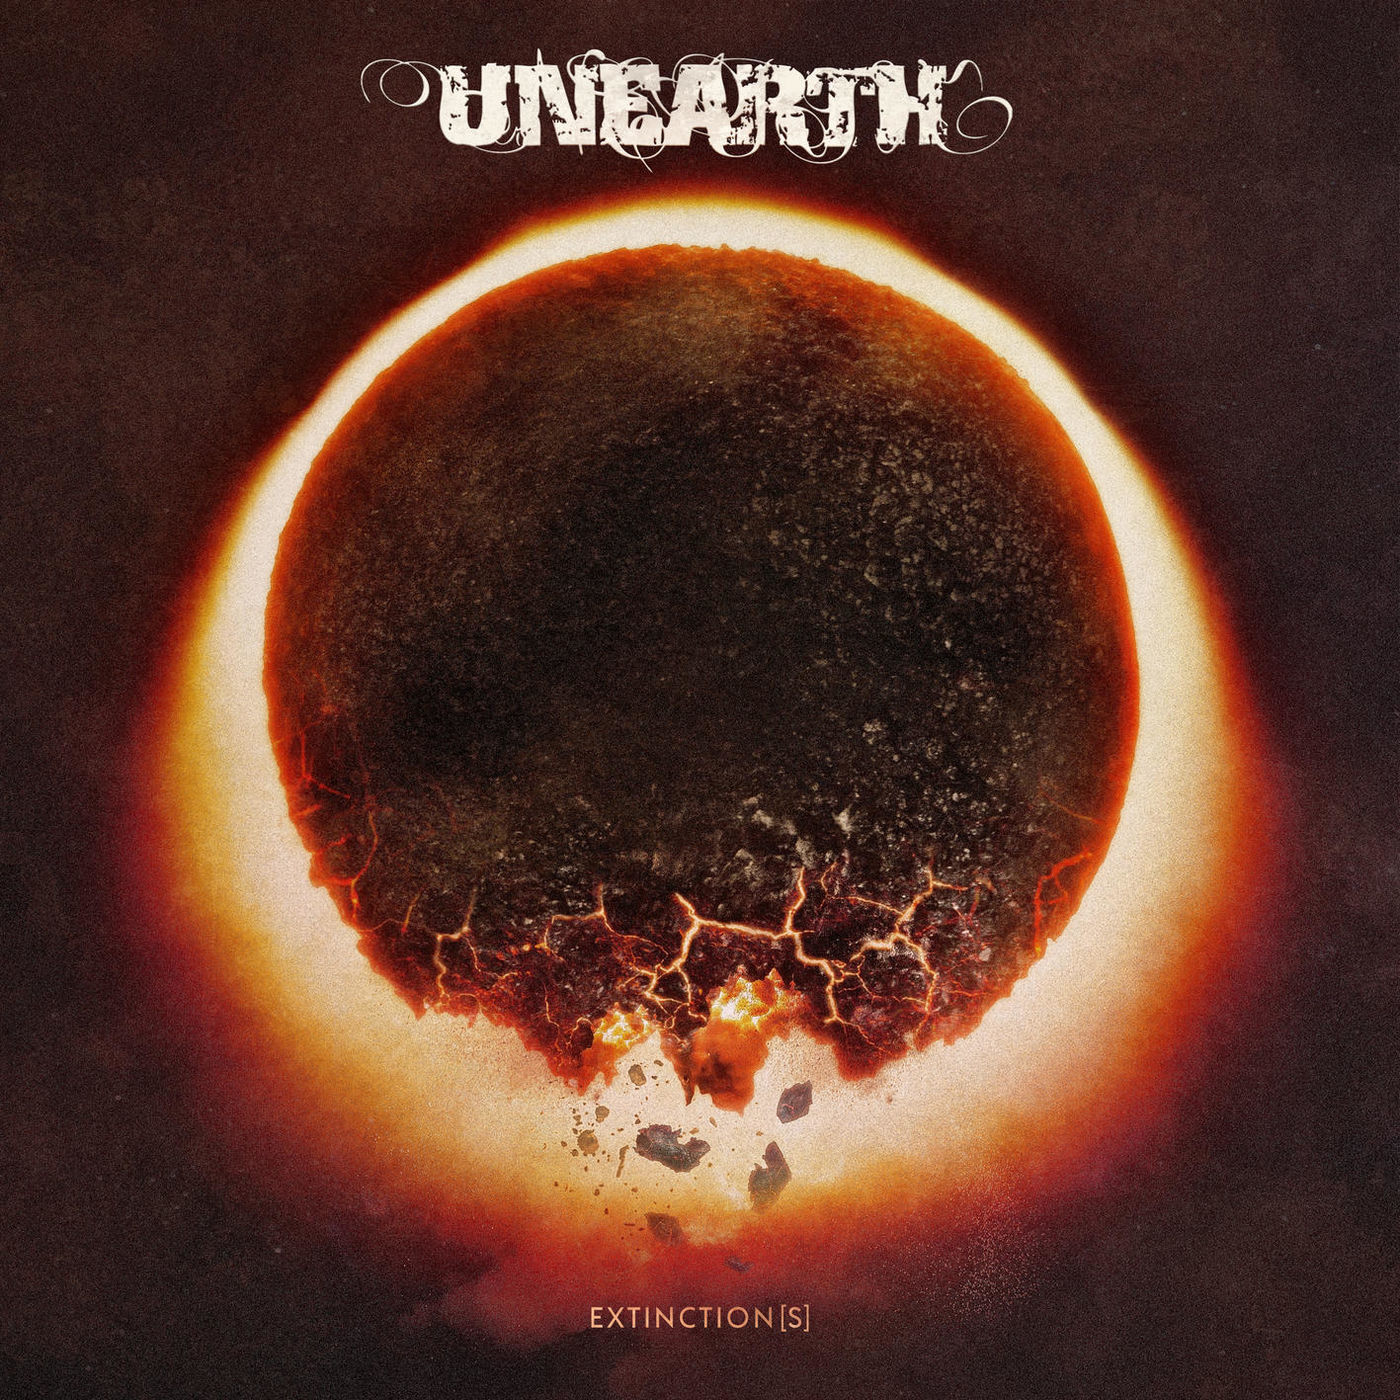 Unearth - One with the Sun [Single] (2018)